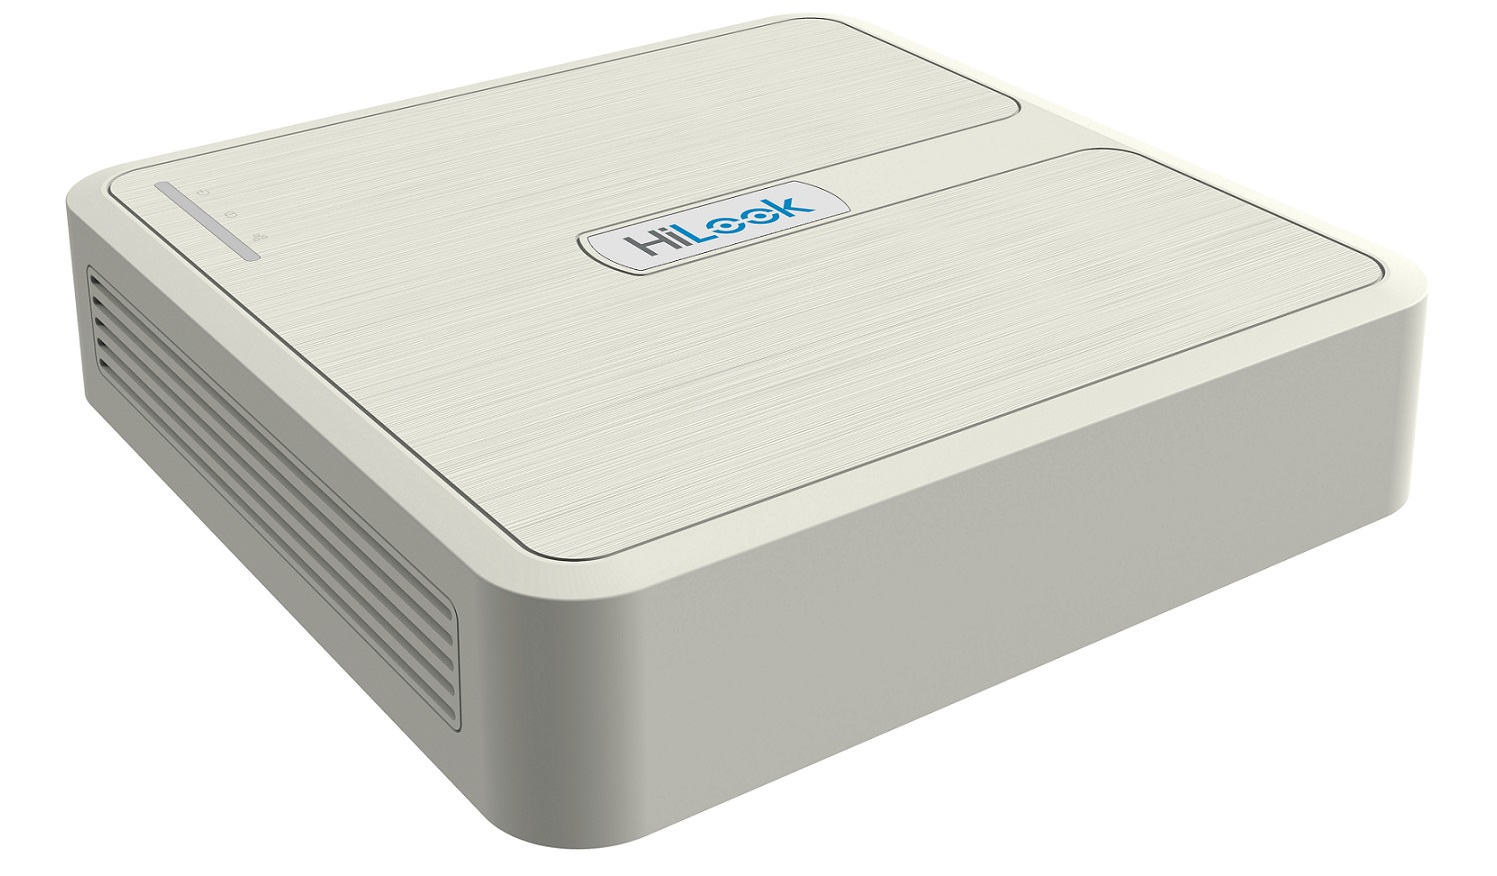 HiLook by Hikvision NVR-104H-D/4P 4 Channel 1080P IP Network NVR PoE Network Video Recorder H.265+ -White  NO HDD